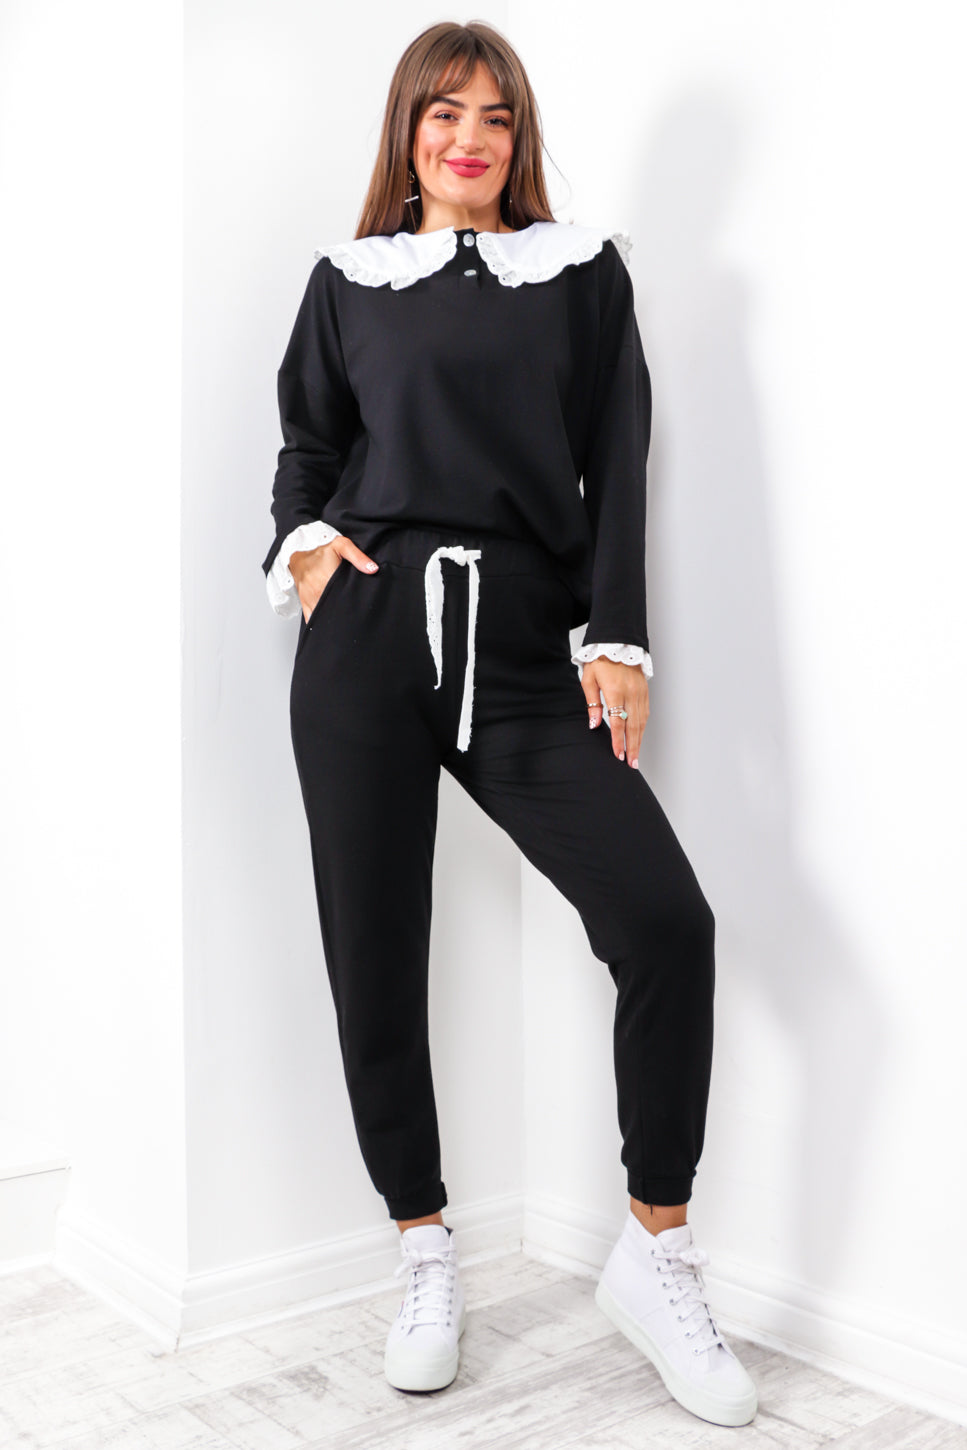 Bet Your Bottom Collar - Black Co-ord